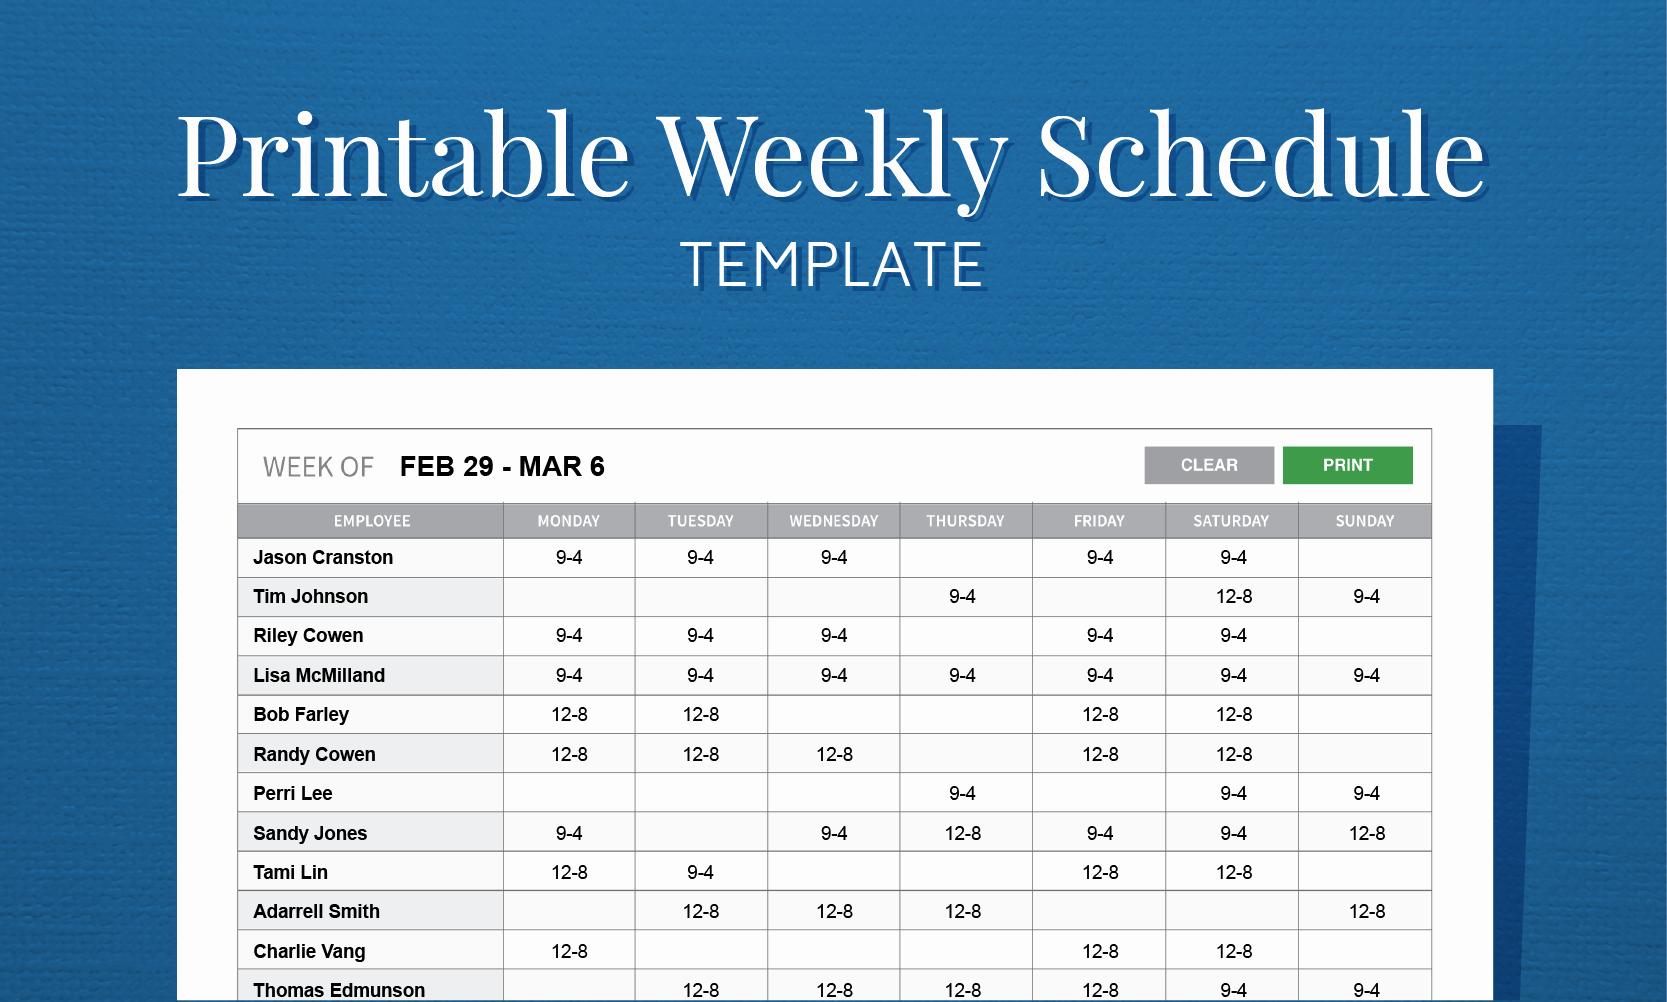 Monthly Employee Schedule Template Excel Unique Free Printable Work Schedule Template for Employee